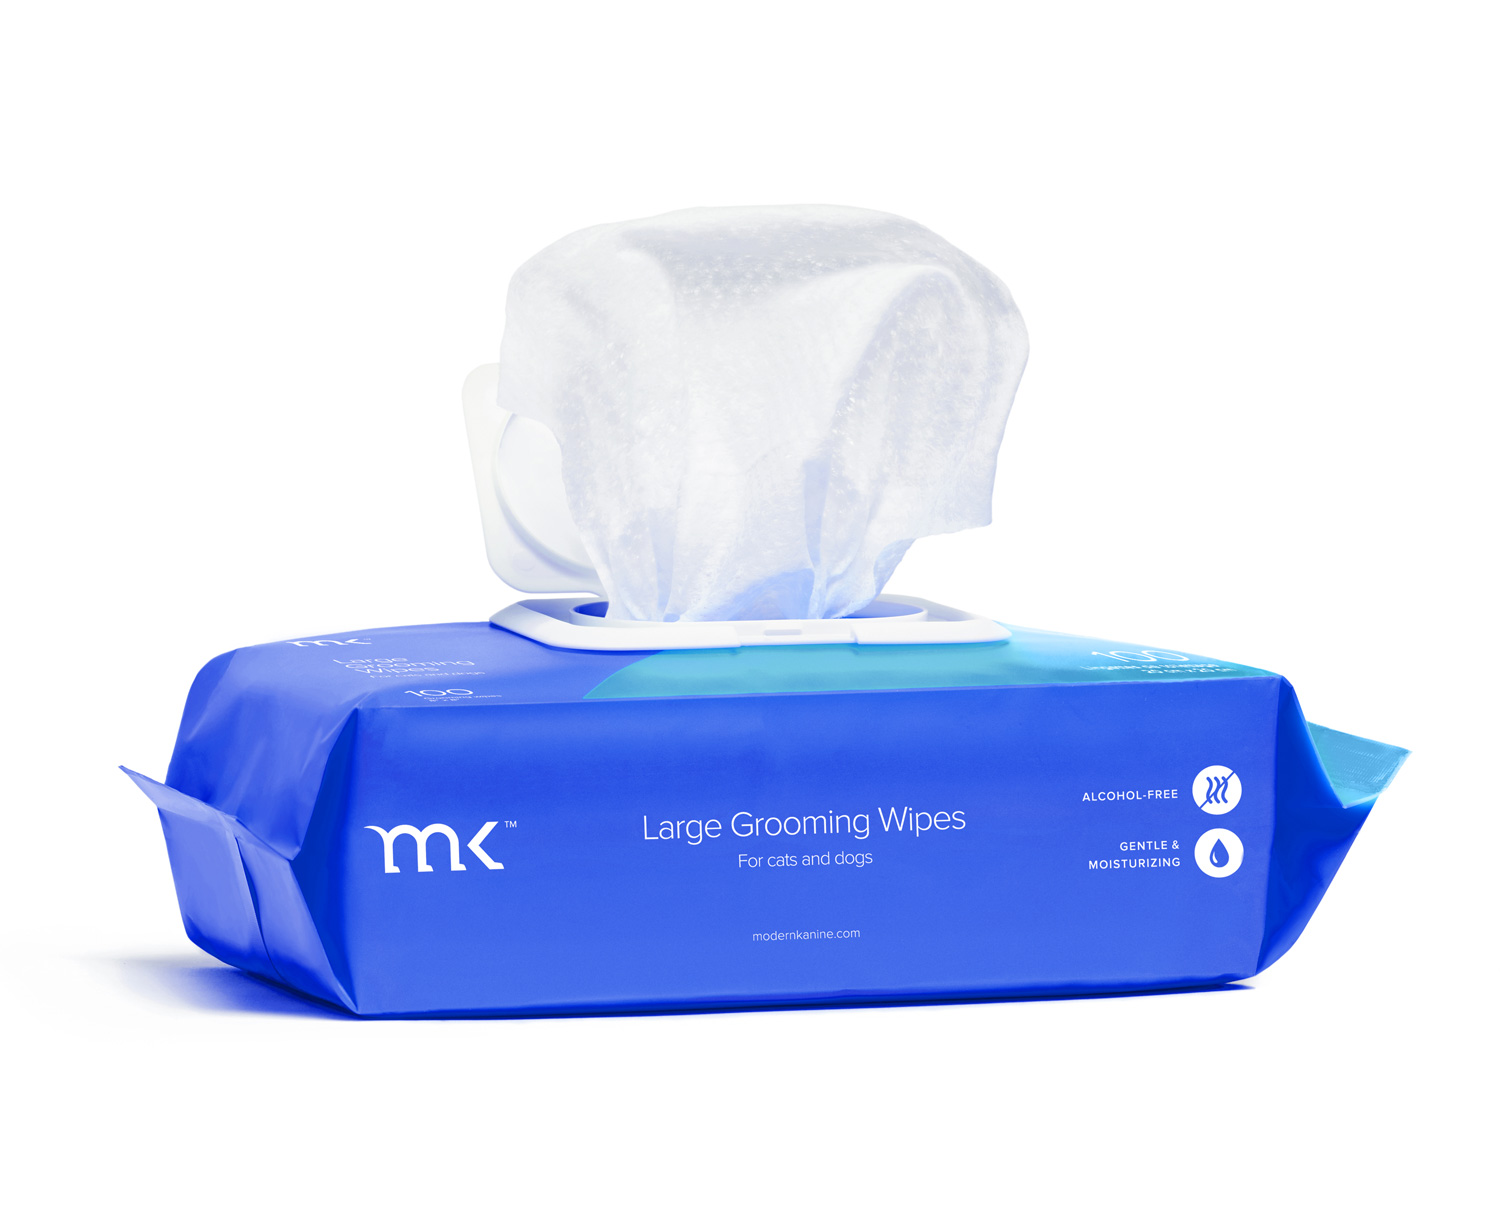 Modern Kanine Unscented Large Grooming Wipes